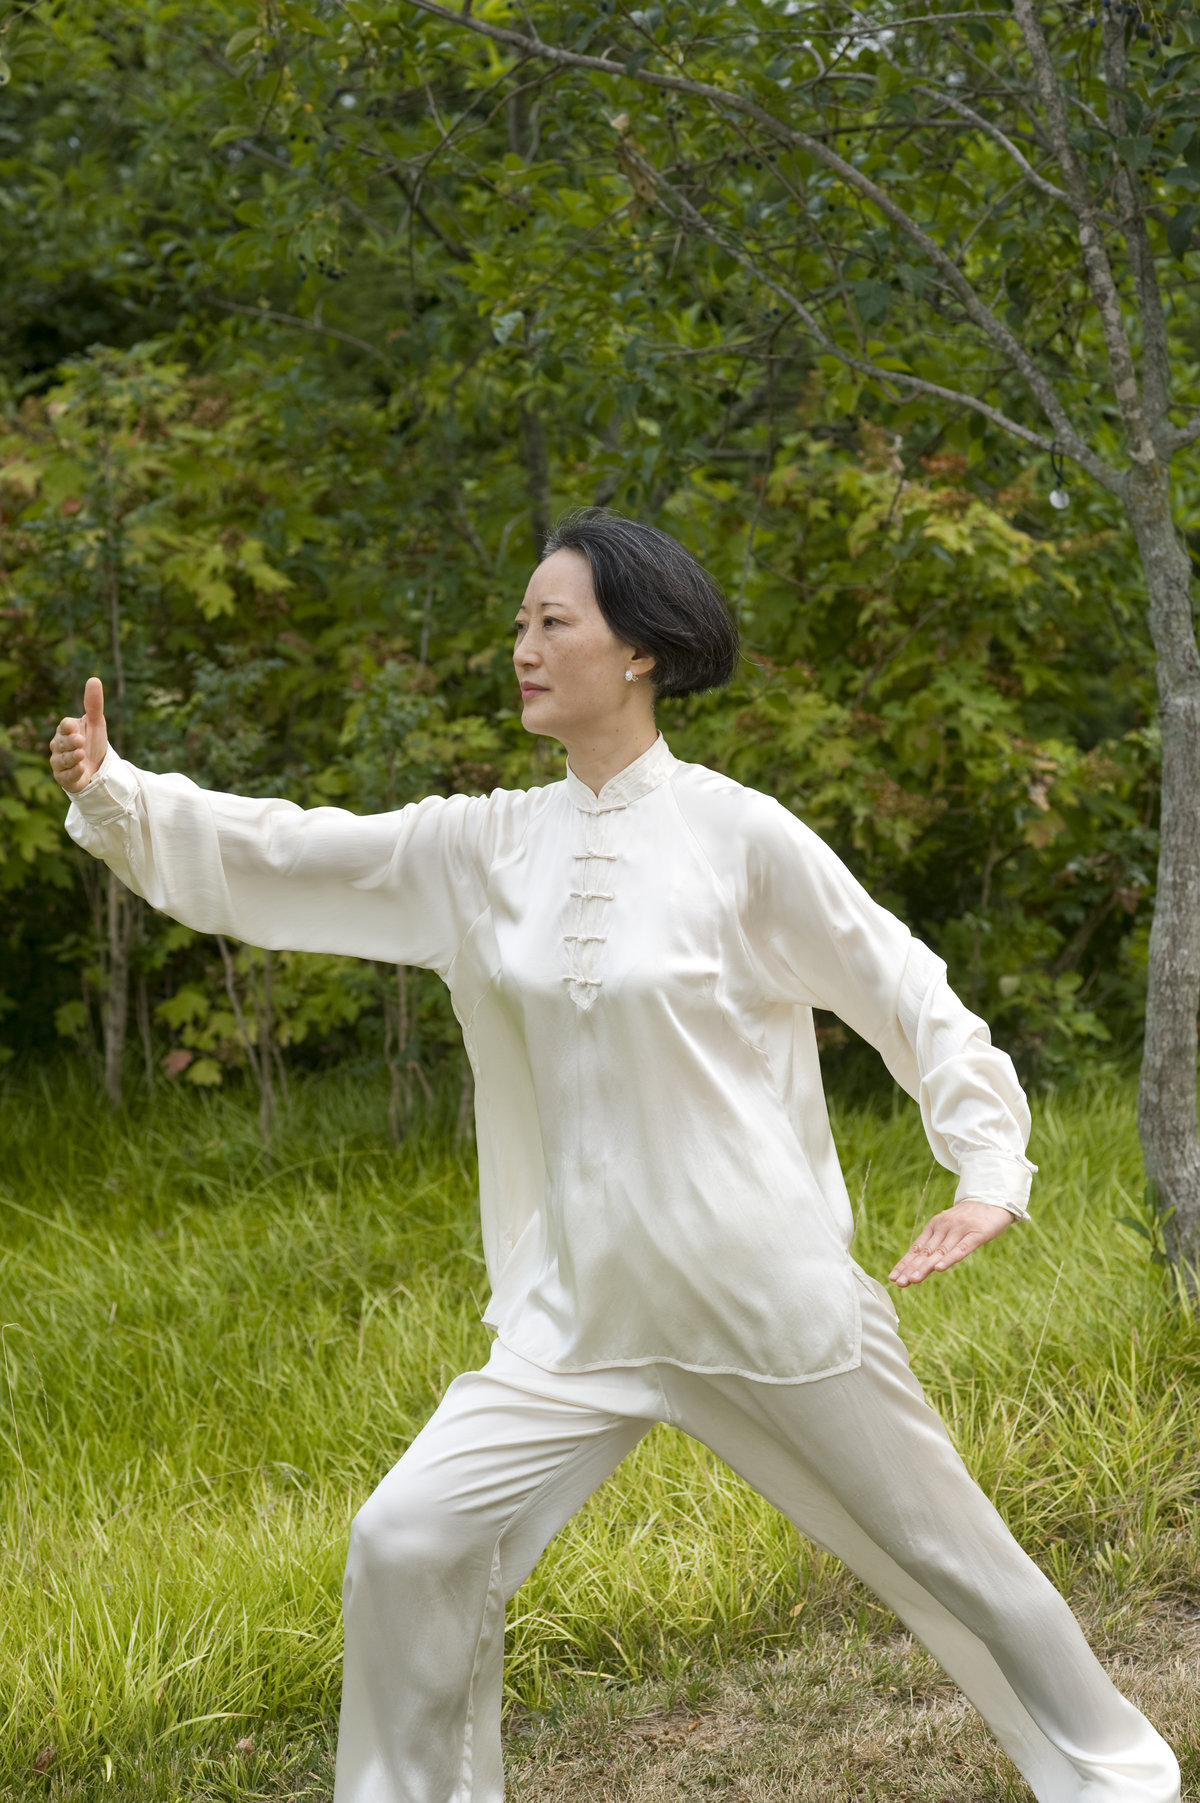 nih tai chi Relevant, quality videos on tai chi posted every day chu min yi demonstrates workout routines on tai chi training apparatus that he developed to further his skills in the traditional wu style of tai chi.